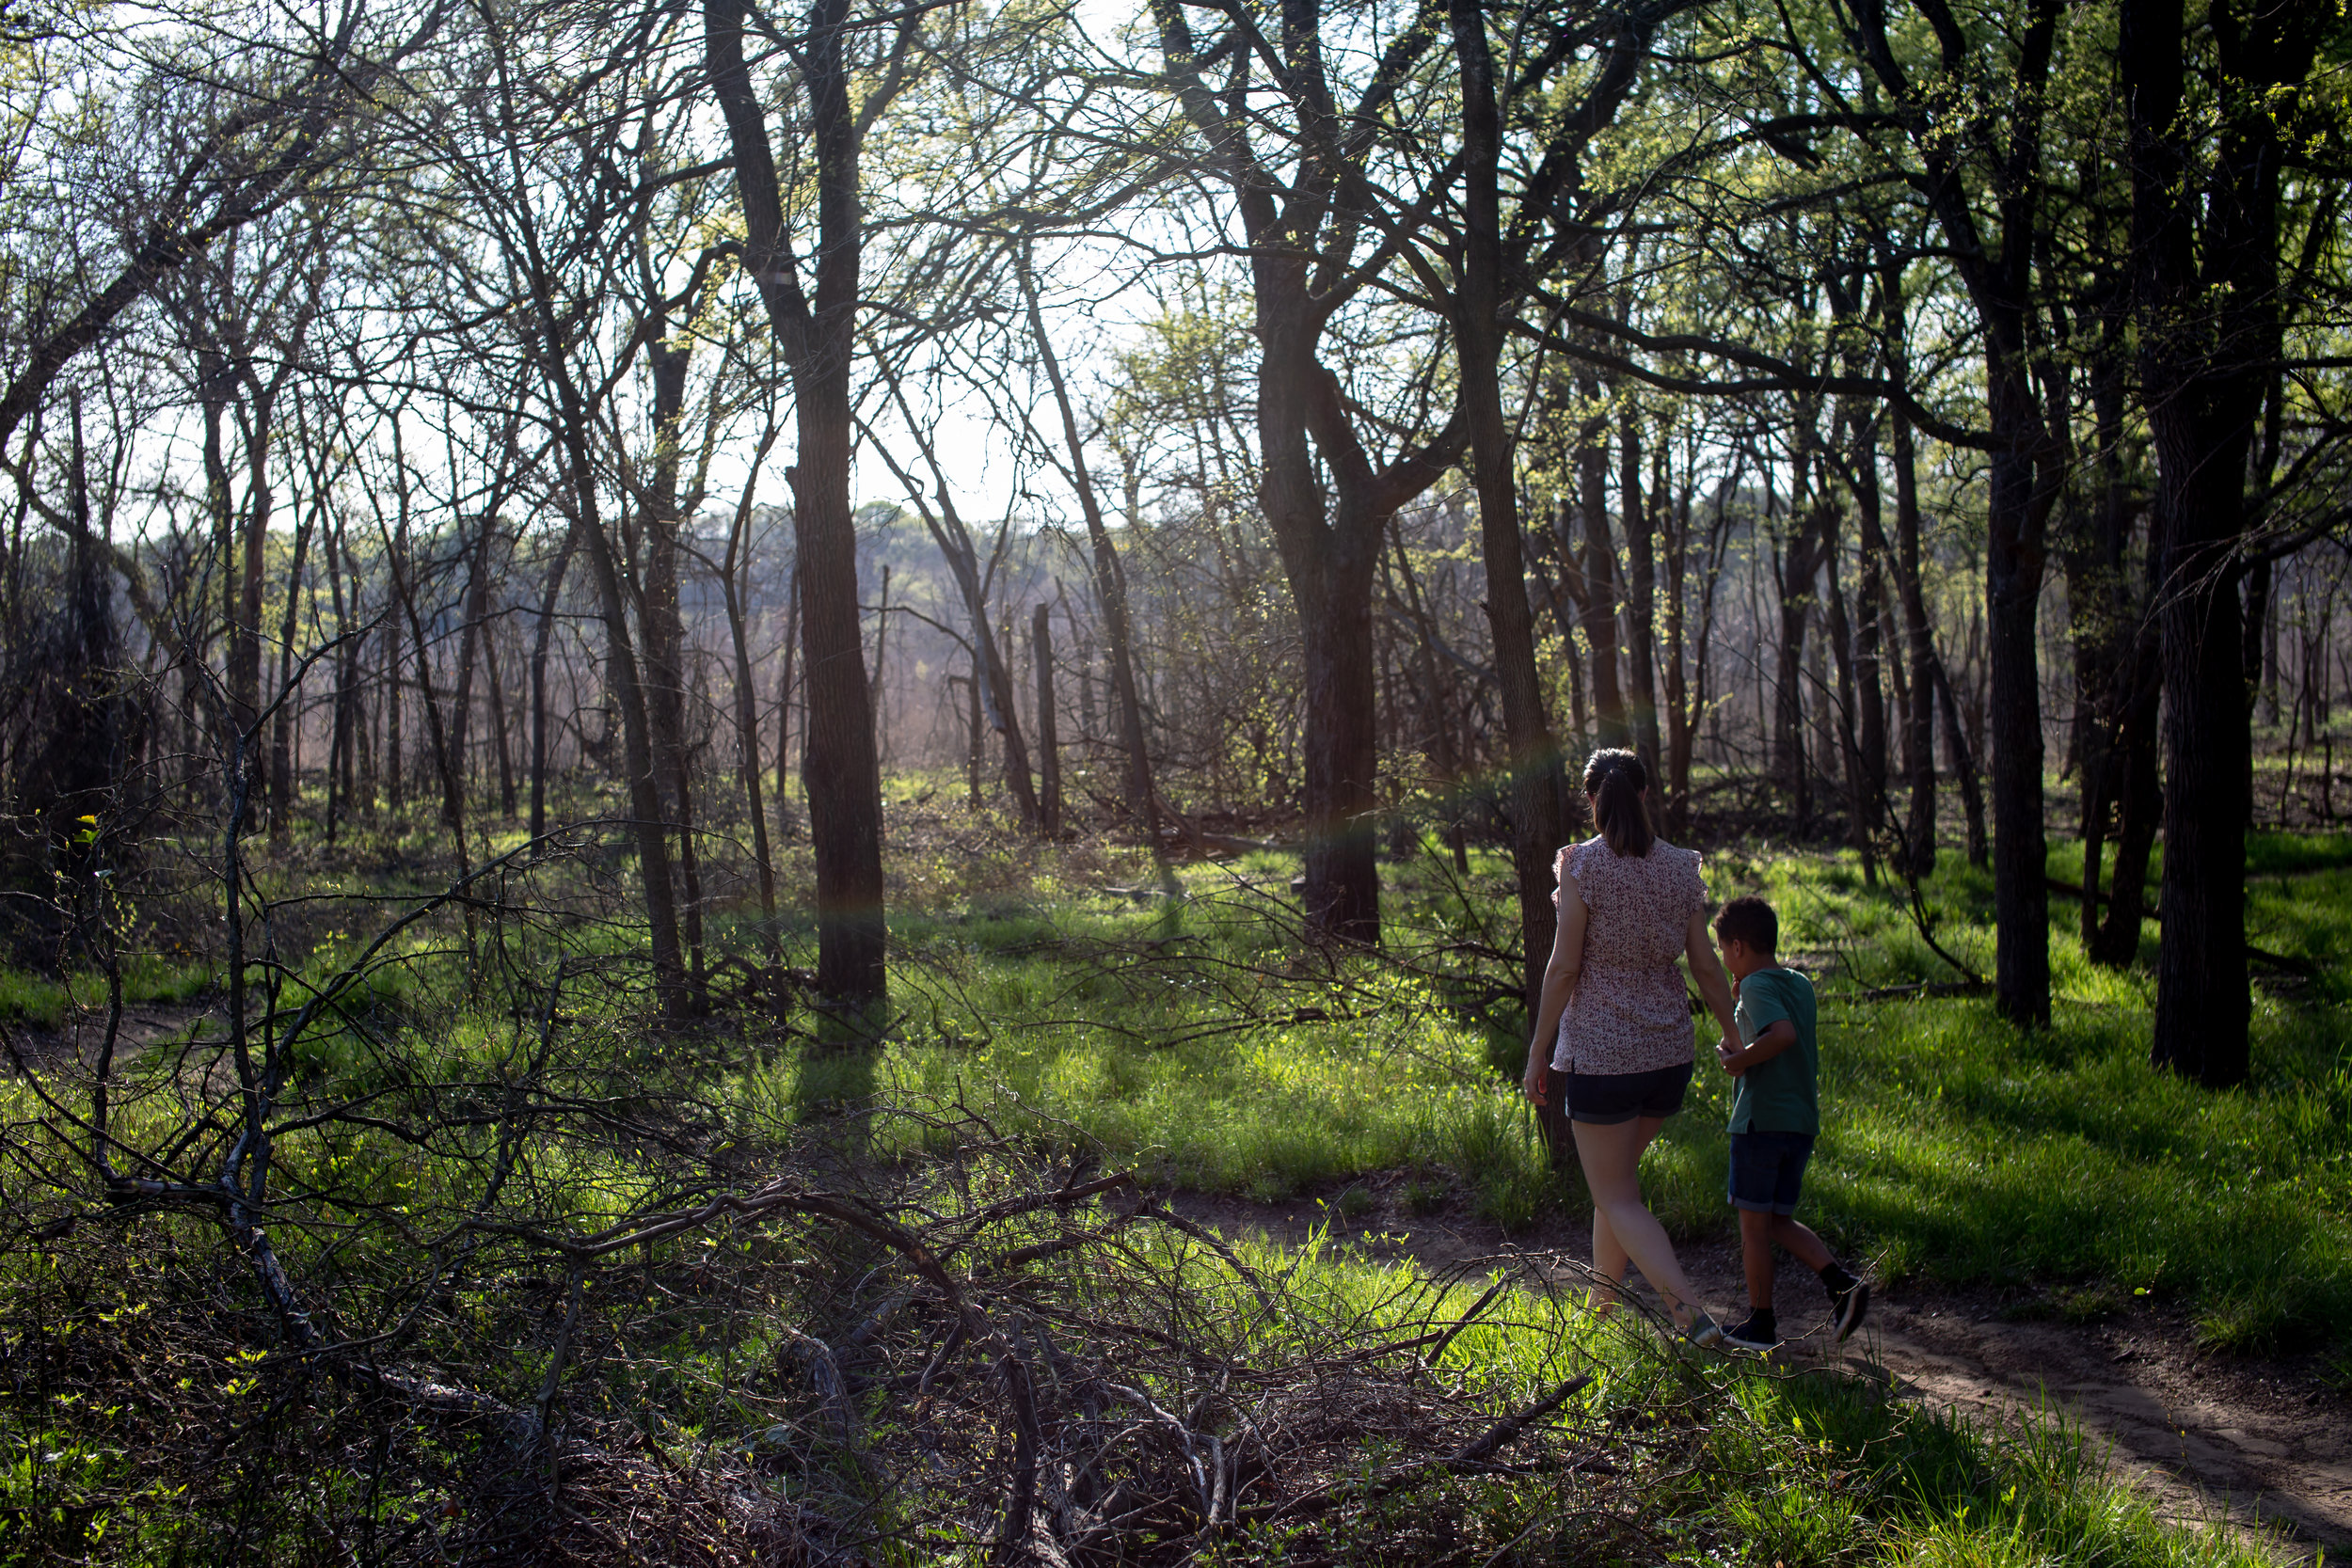 MARCH 26, 2019 | TWO HIKERS WALK THROUGH A TEXAS TRAIL DURING THE FIRST DAYS OF SPRING.